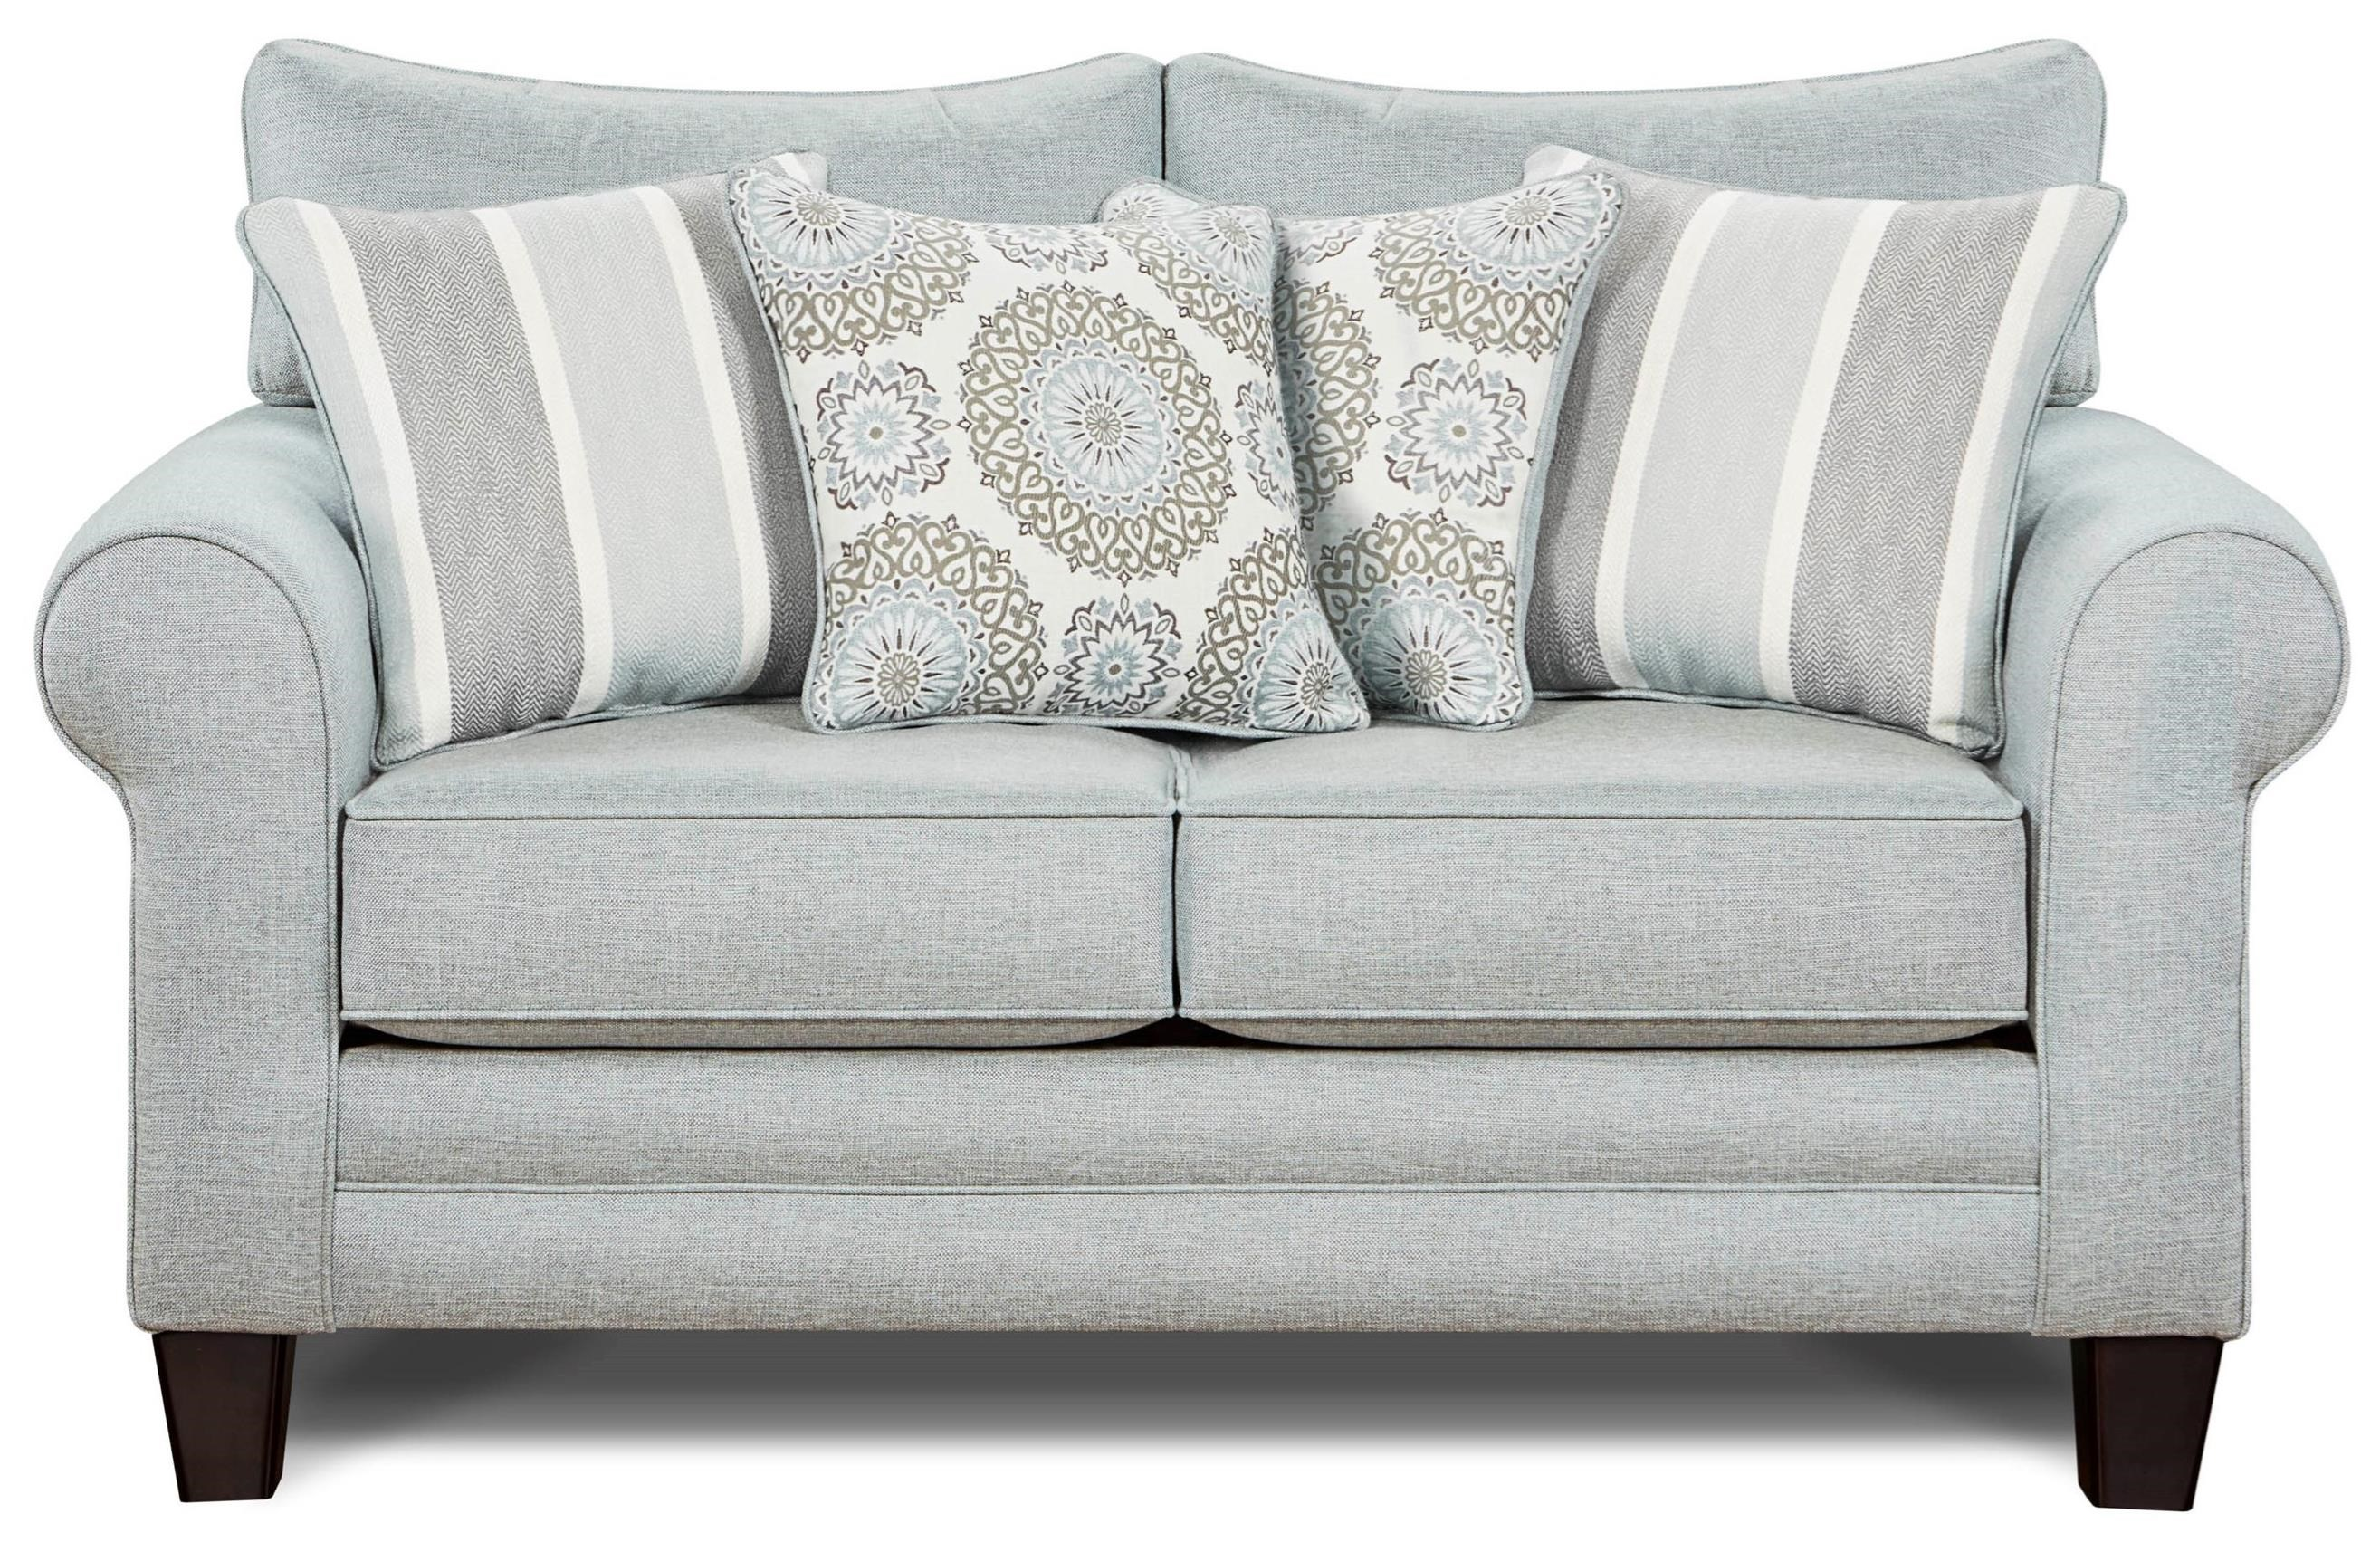 1140 Loveseat by Fusion Furniture at Story & Lee Furniture